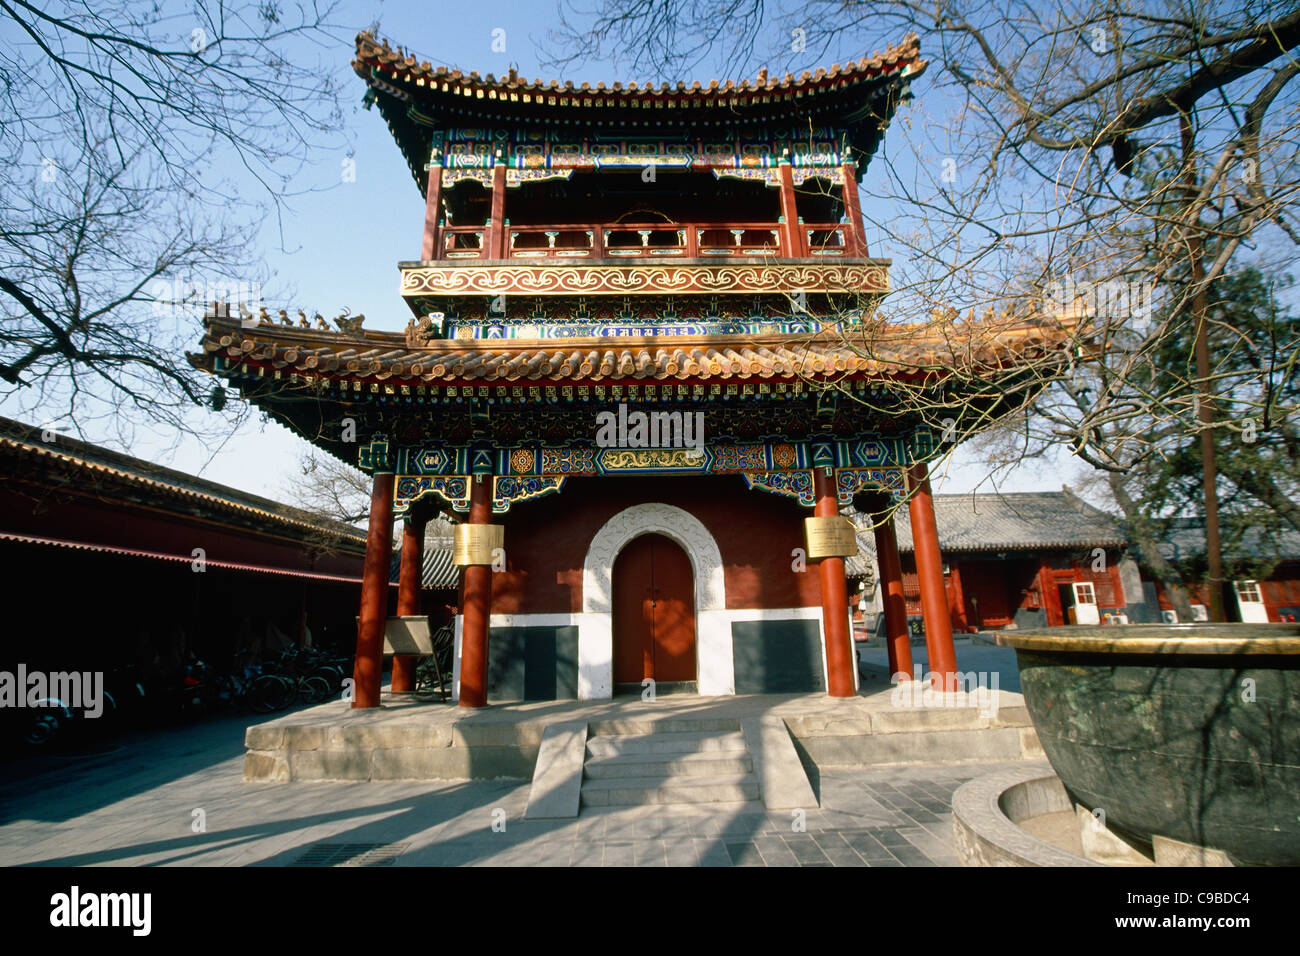 Low Angle View of a Drum Tower, Lama Temple Yonghe Lamasery), Beijing China - Stock Image